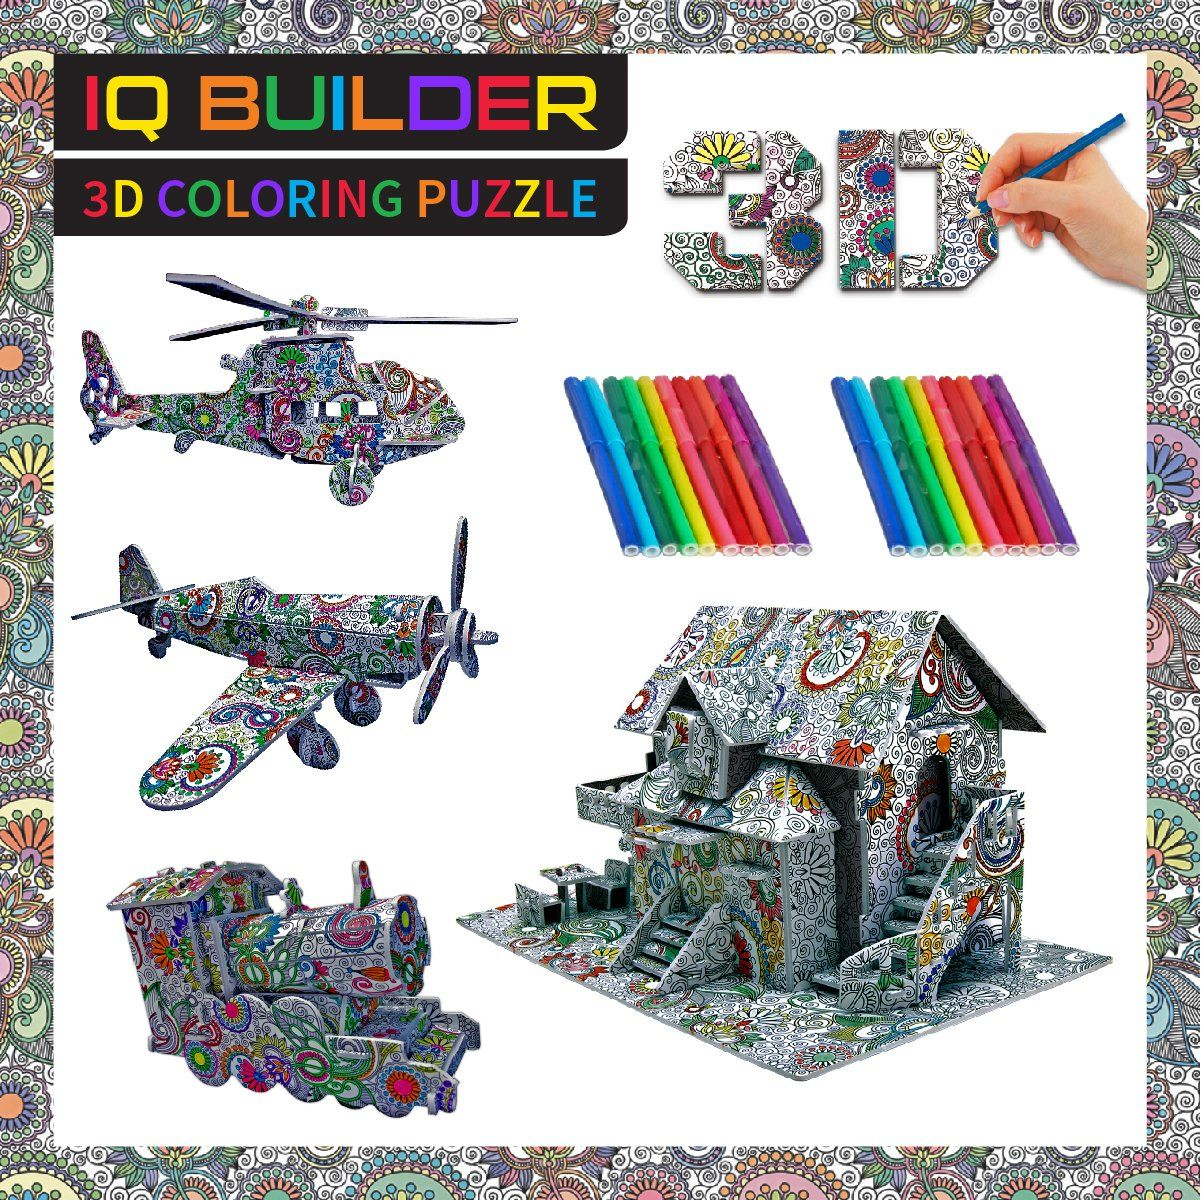 a277e159b IQ BUILDER FUN CREATIVE DIY ARTS AND CRAFTS KIT BEST TOY GIFT FOR GIRLS AND  BOYS AGE 8 9 10 11 12 YEAR OLD EDUCATIONAL ART BUILDING PAINTING COLORING  3D ...